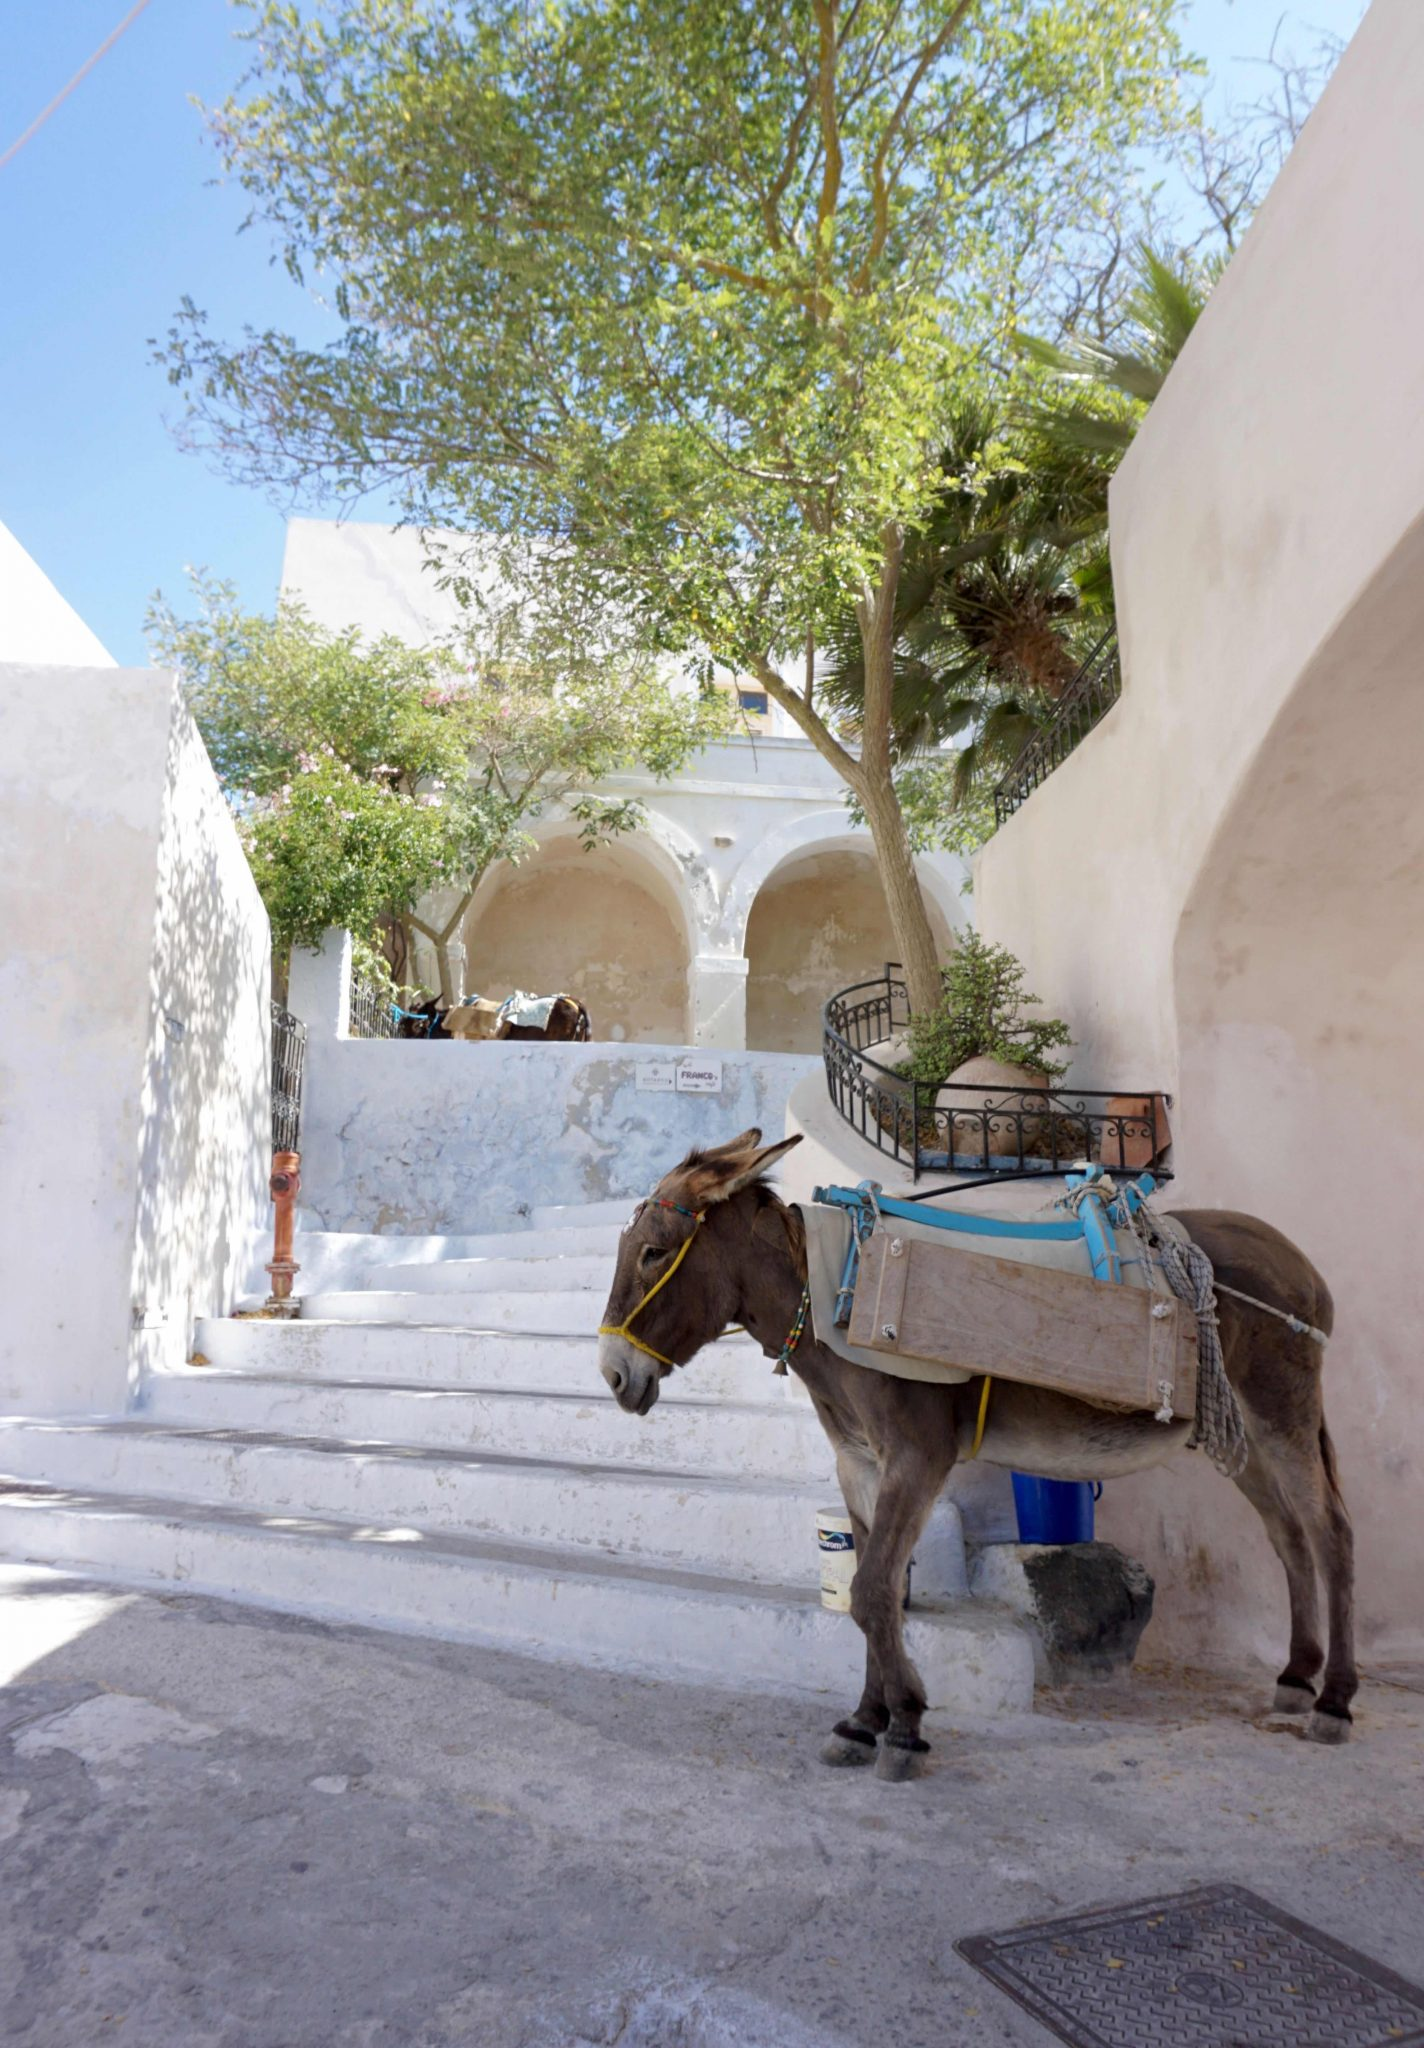 Donkey in traditional town of Pyrgos, Santorini